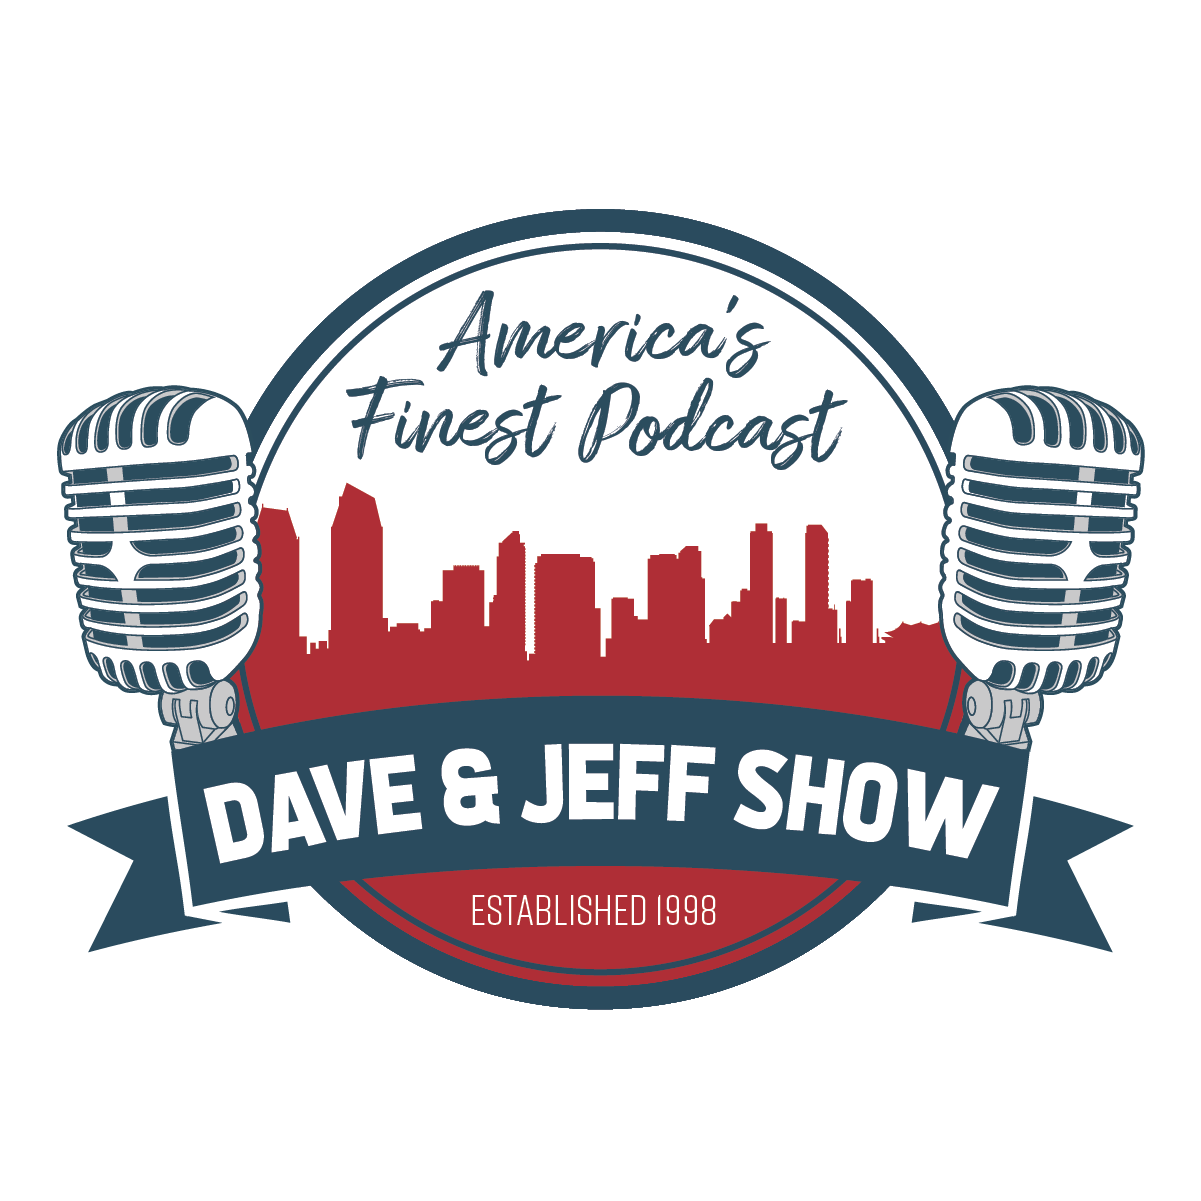 Dave & Jeff Show Logo. A red silhouette of San Diego between two microphones